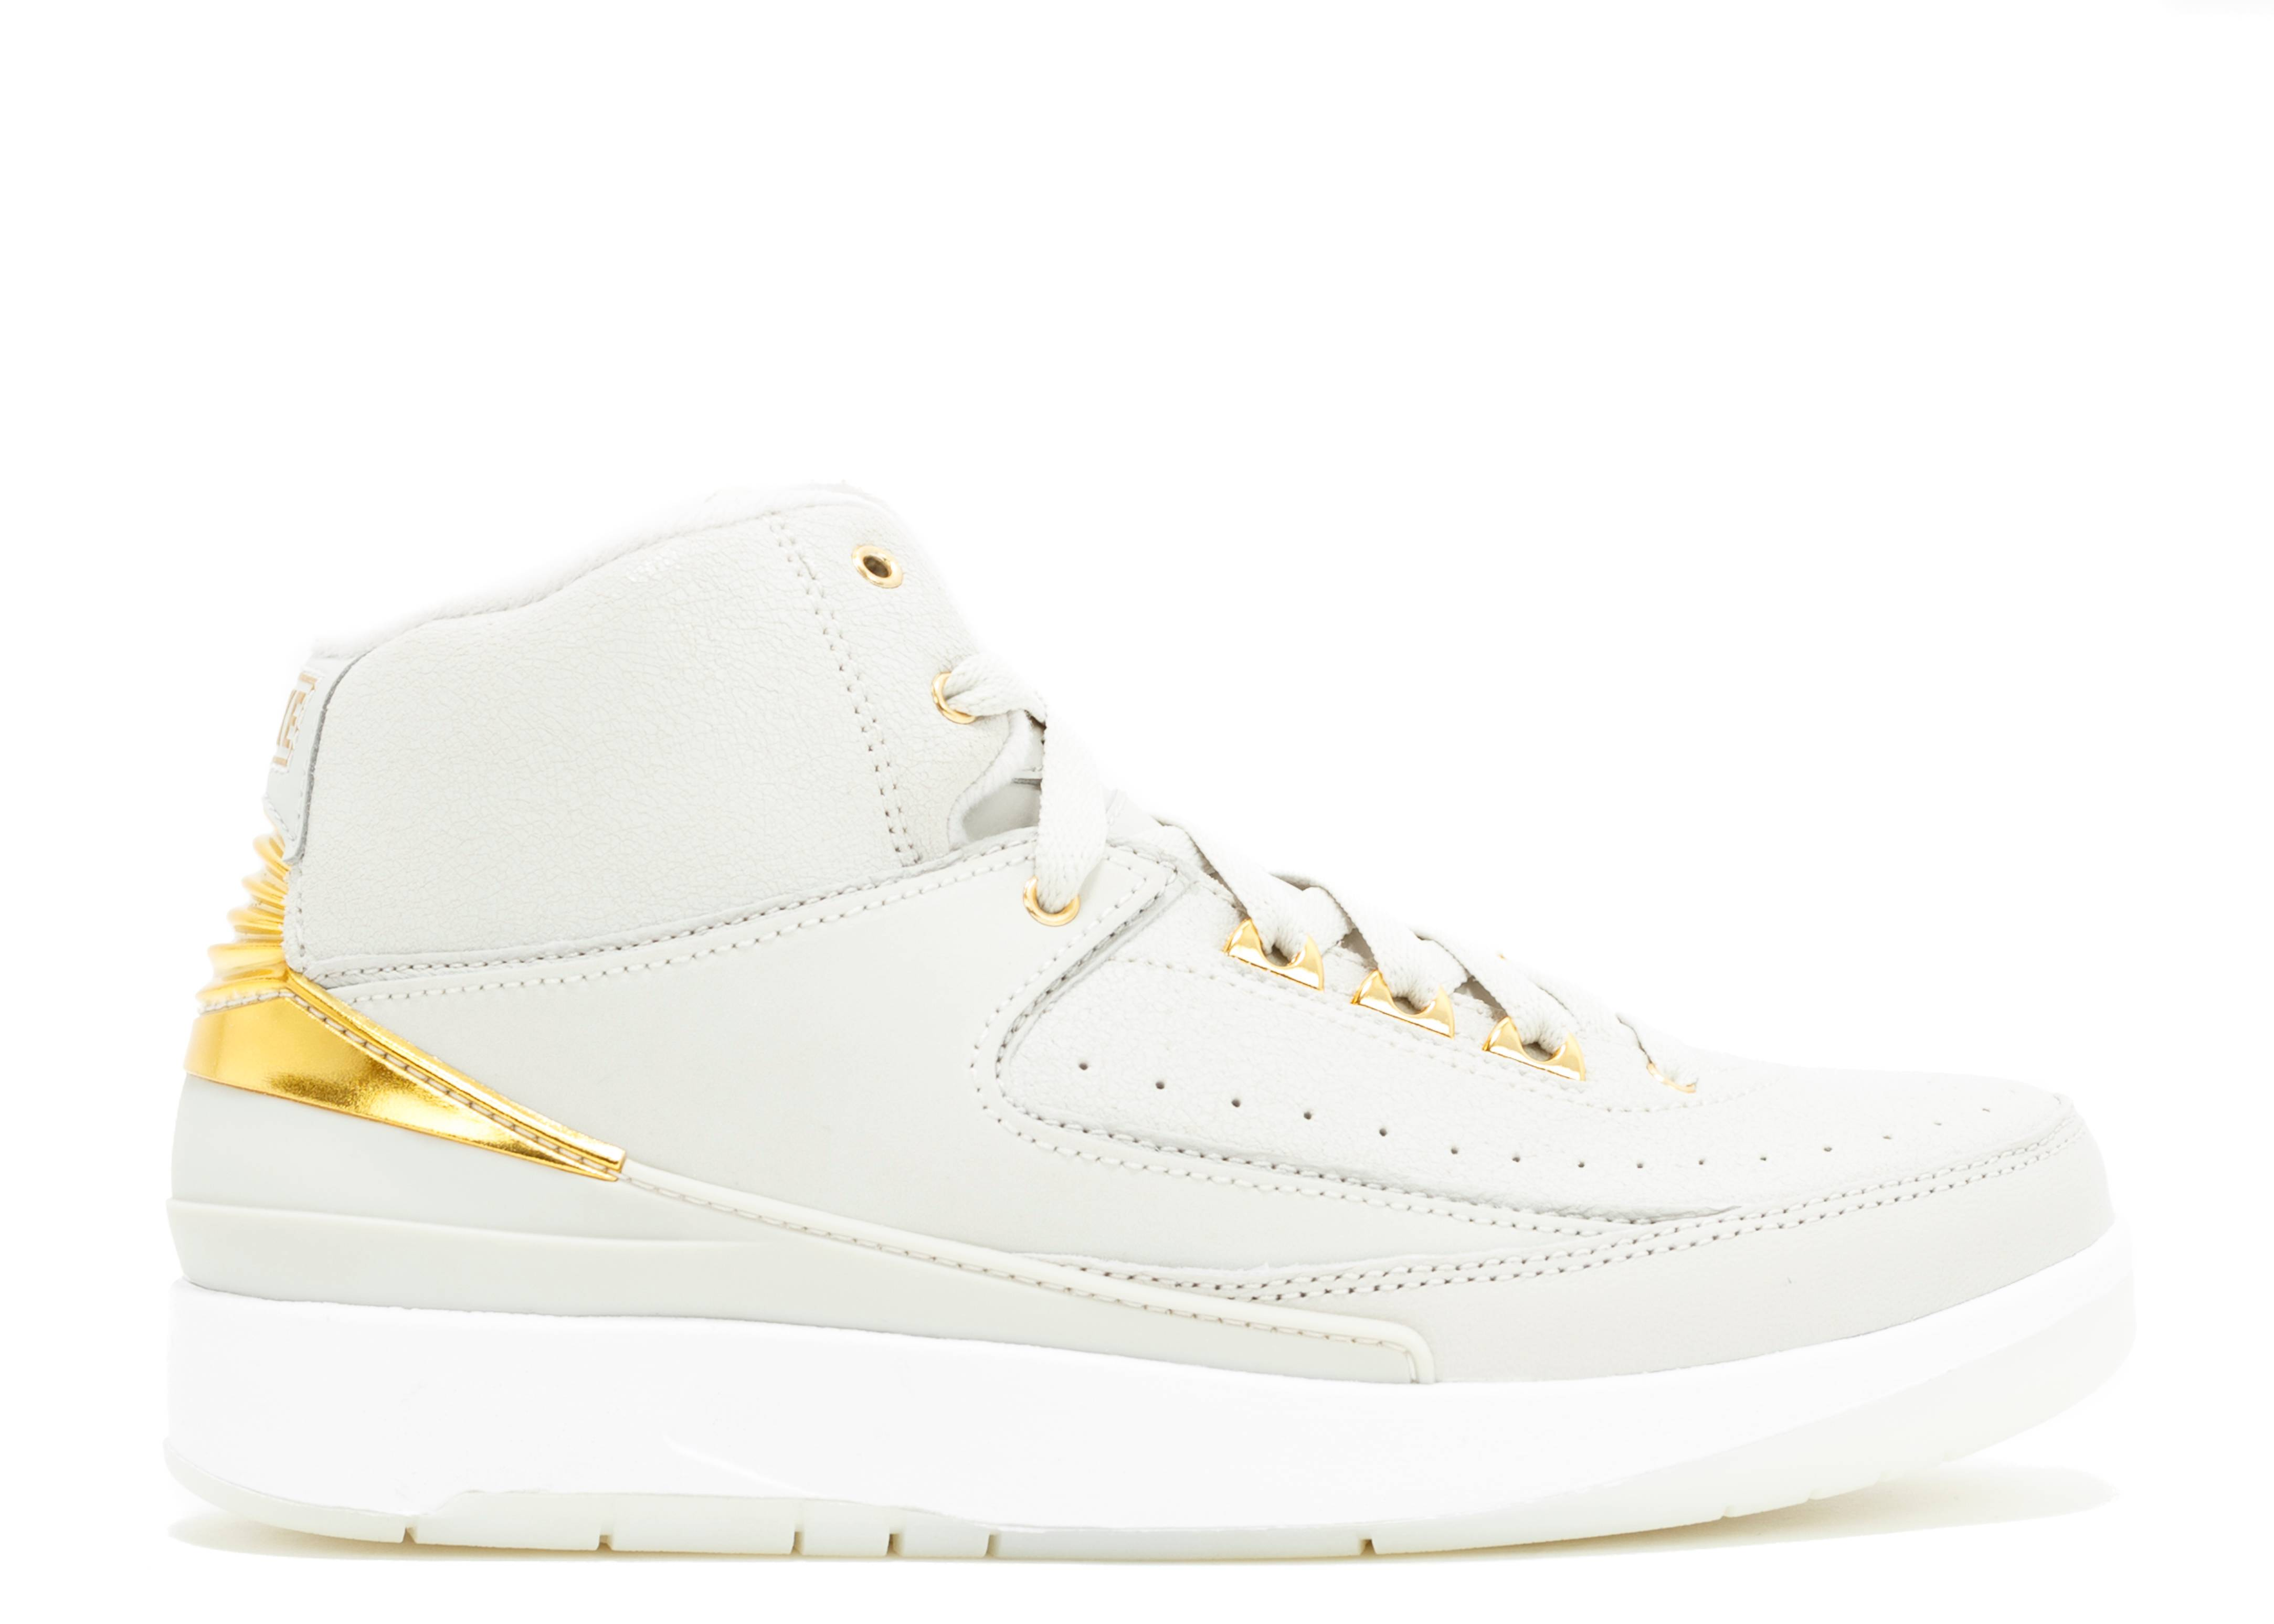 air jordan retro 2 pink yellow